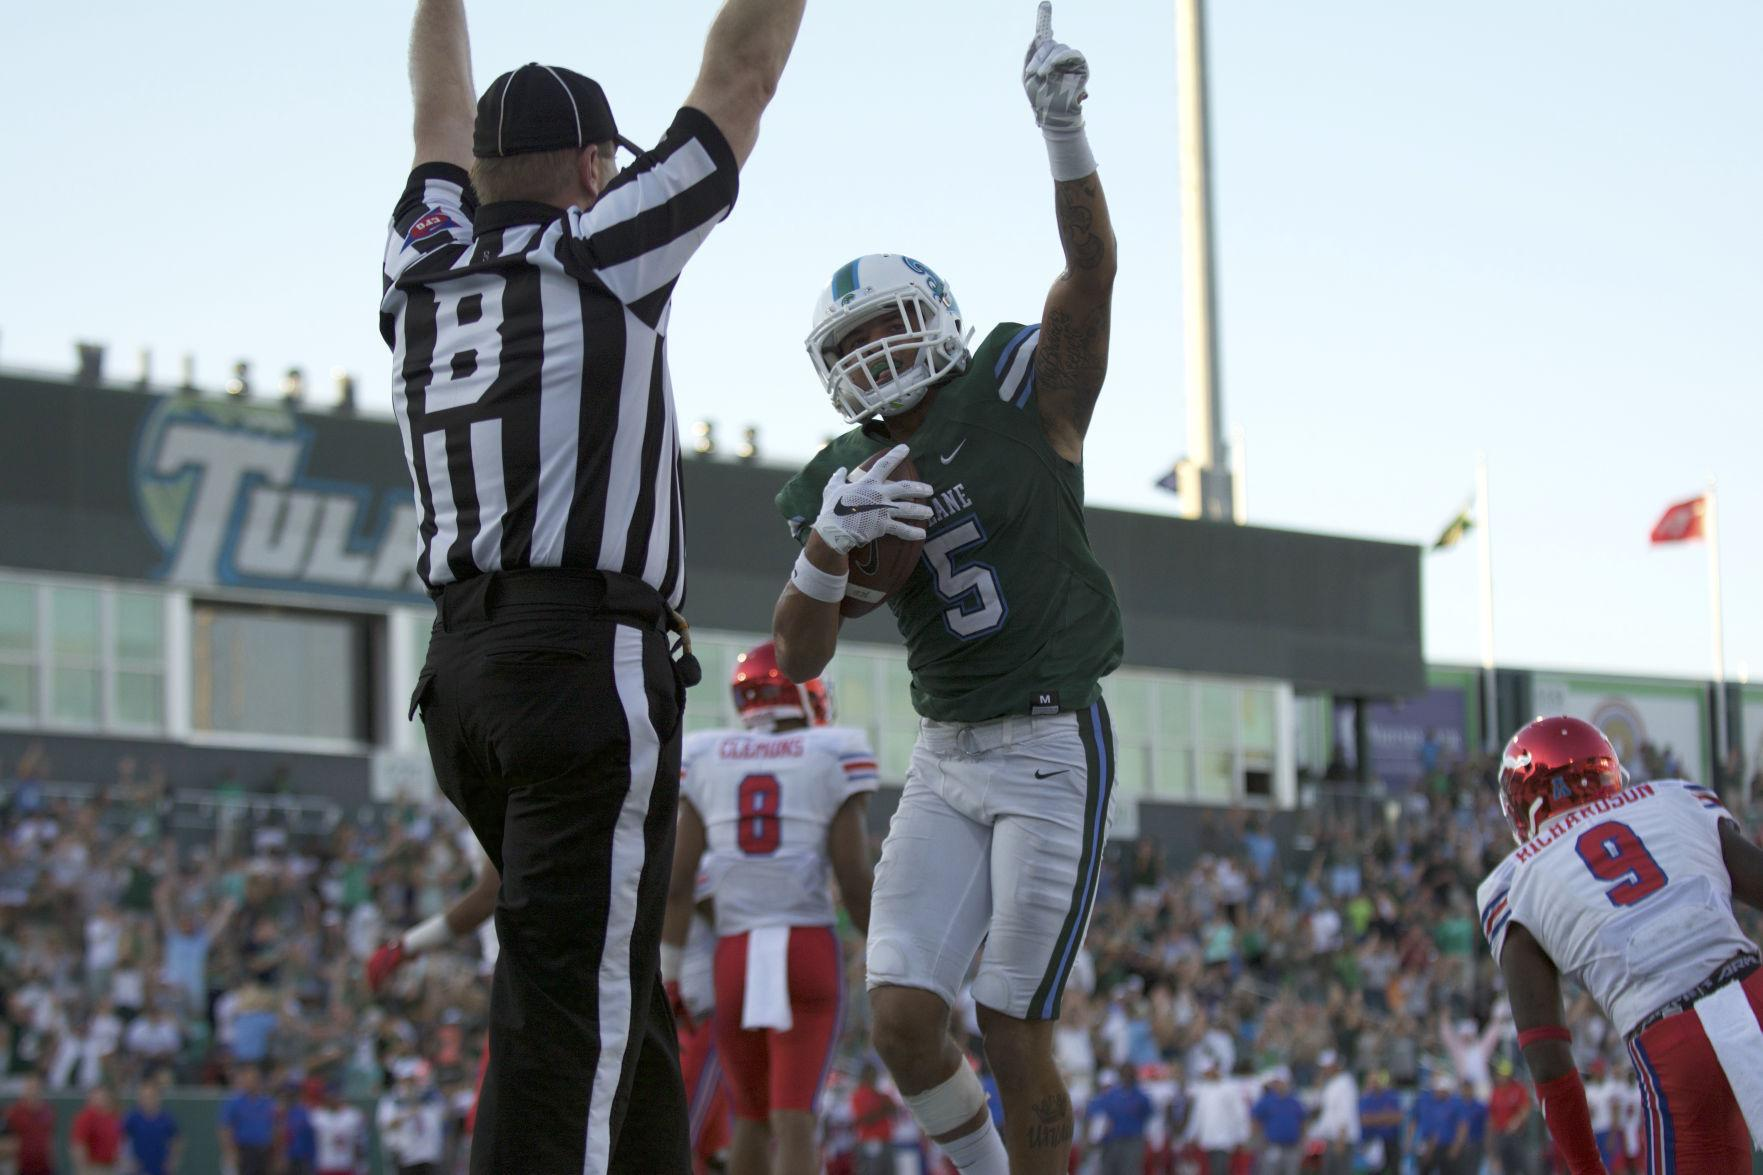 Redshirt sophomore wide receiver Terren Encalade clutches the ball in a game against Southern Methodist University.